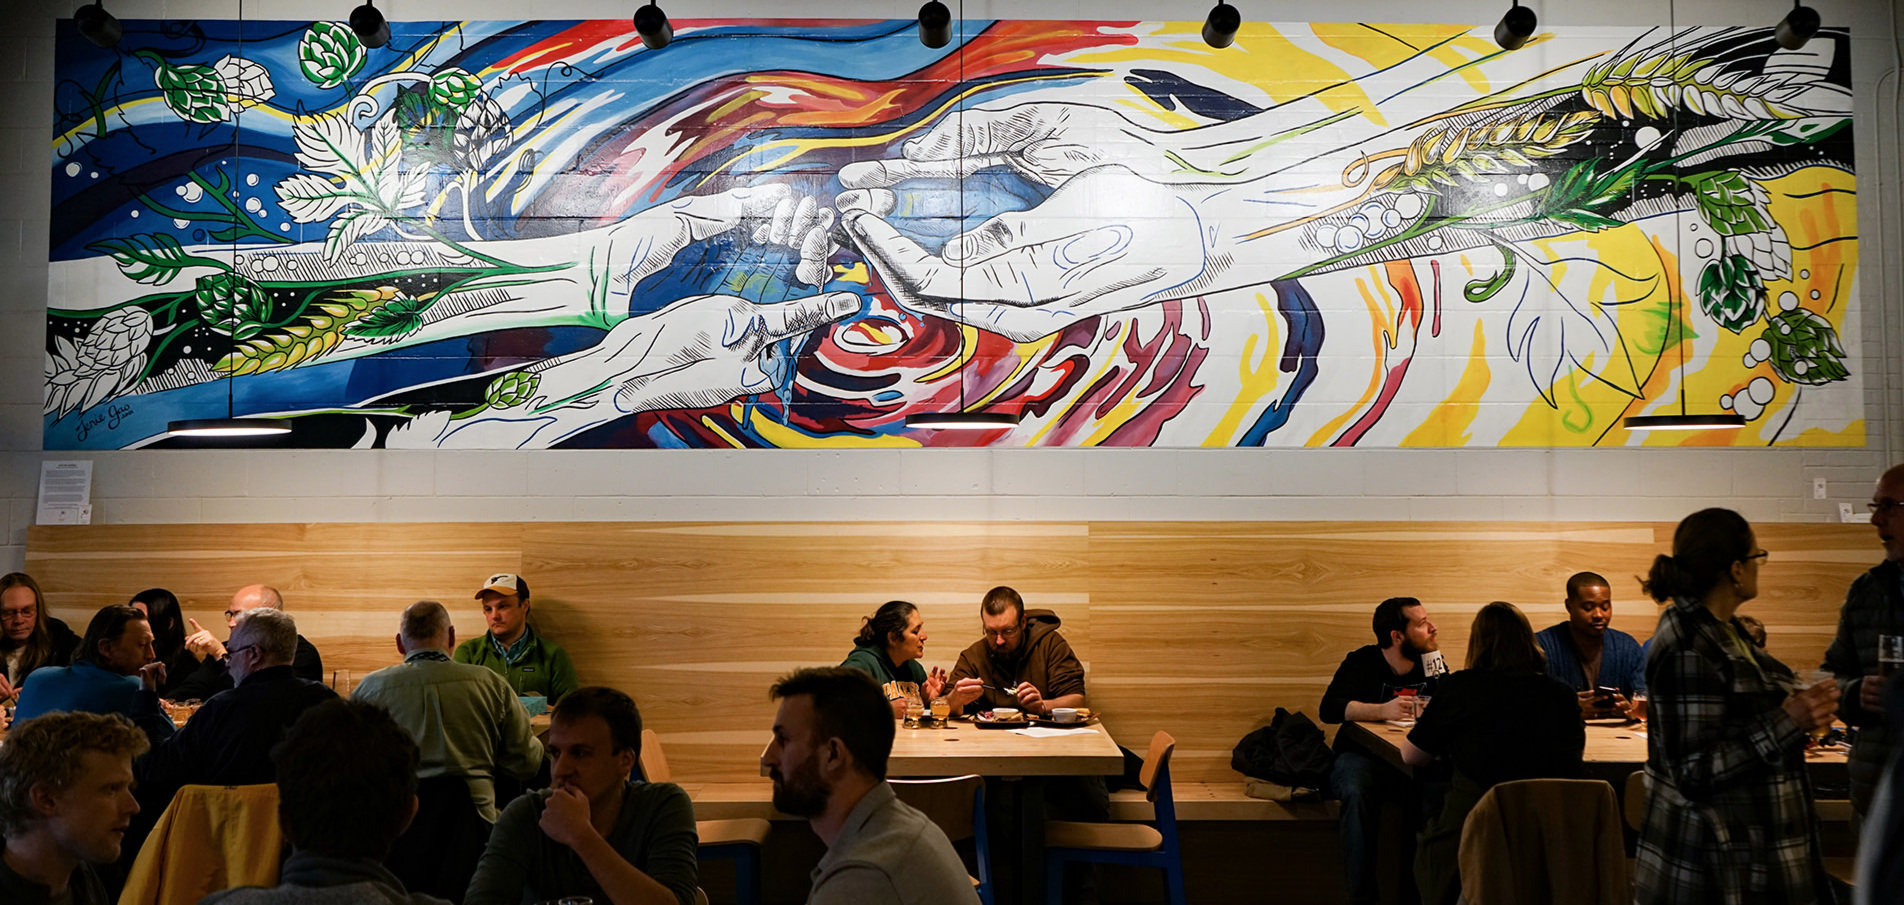 How We Gather  - a mural by Jenie Gao Studio for Working Draft Beer Company